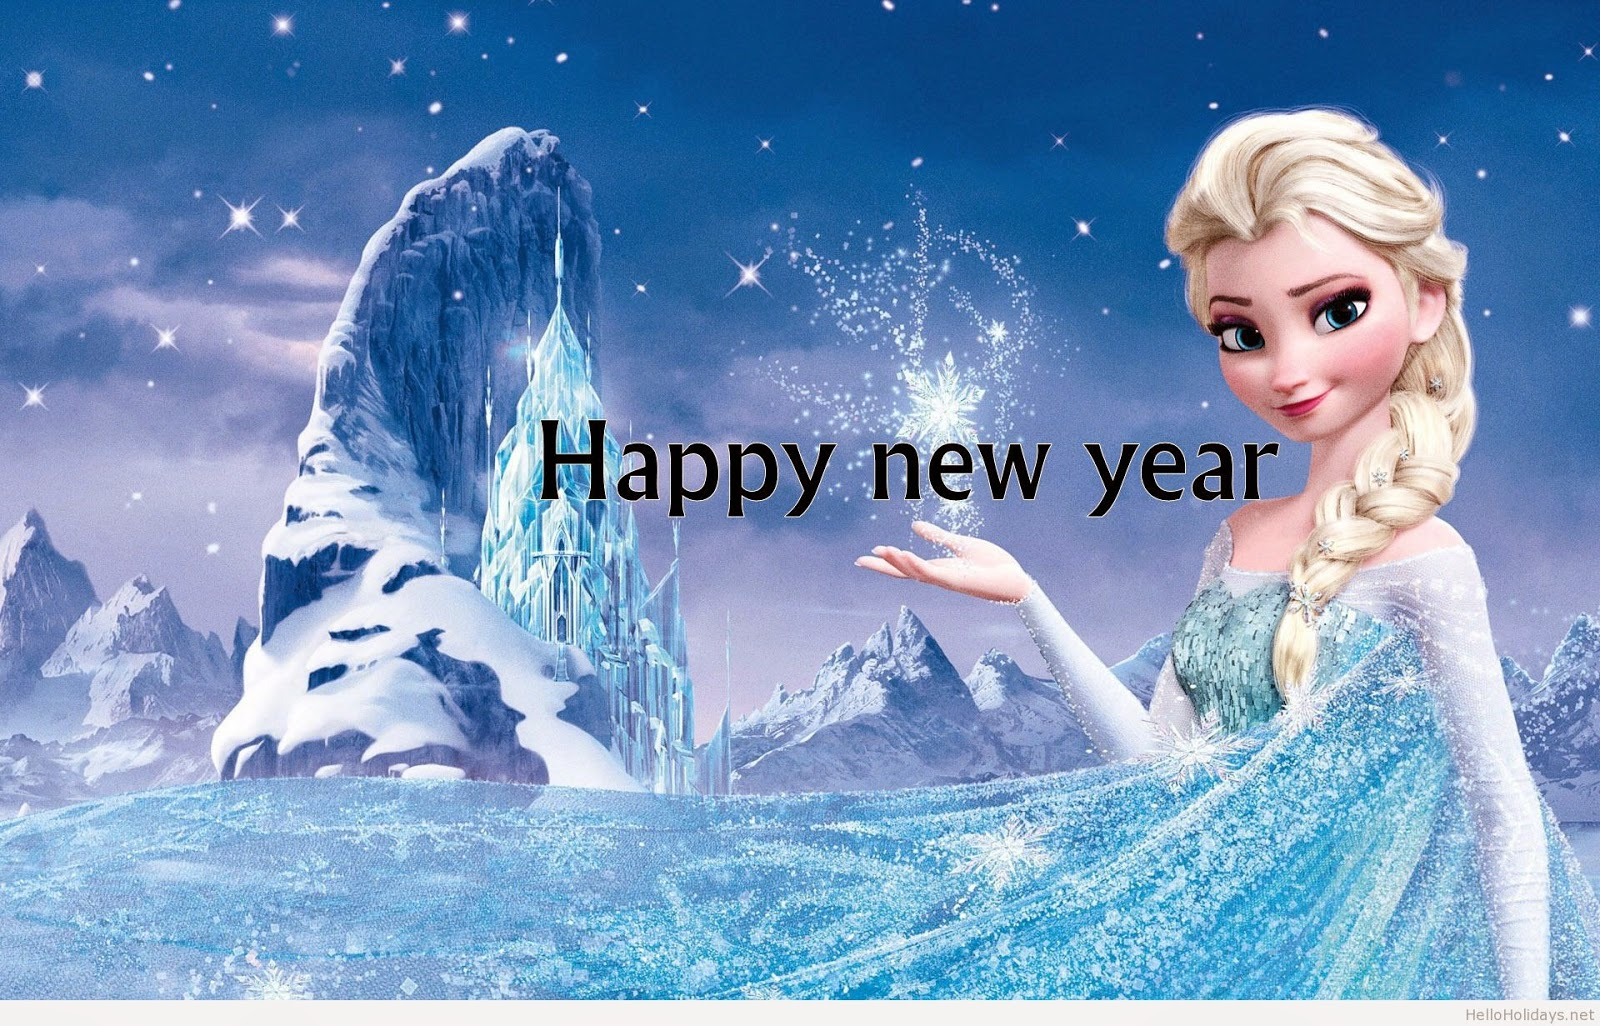 Happy New Year 2019 Cartoon Images for Facebook